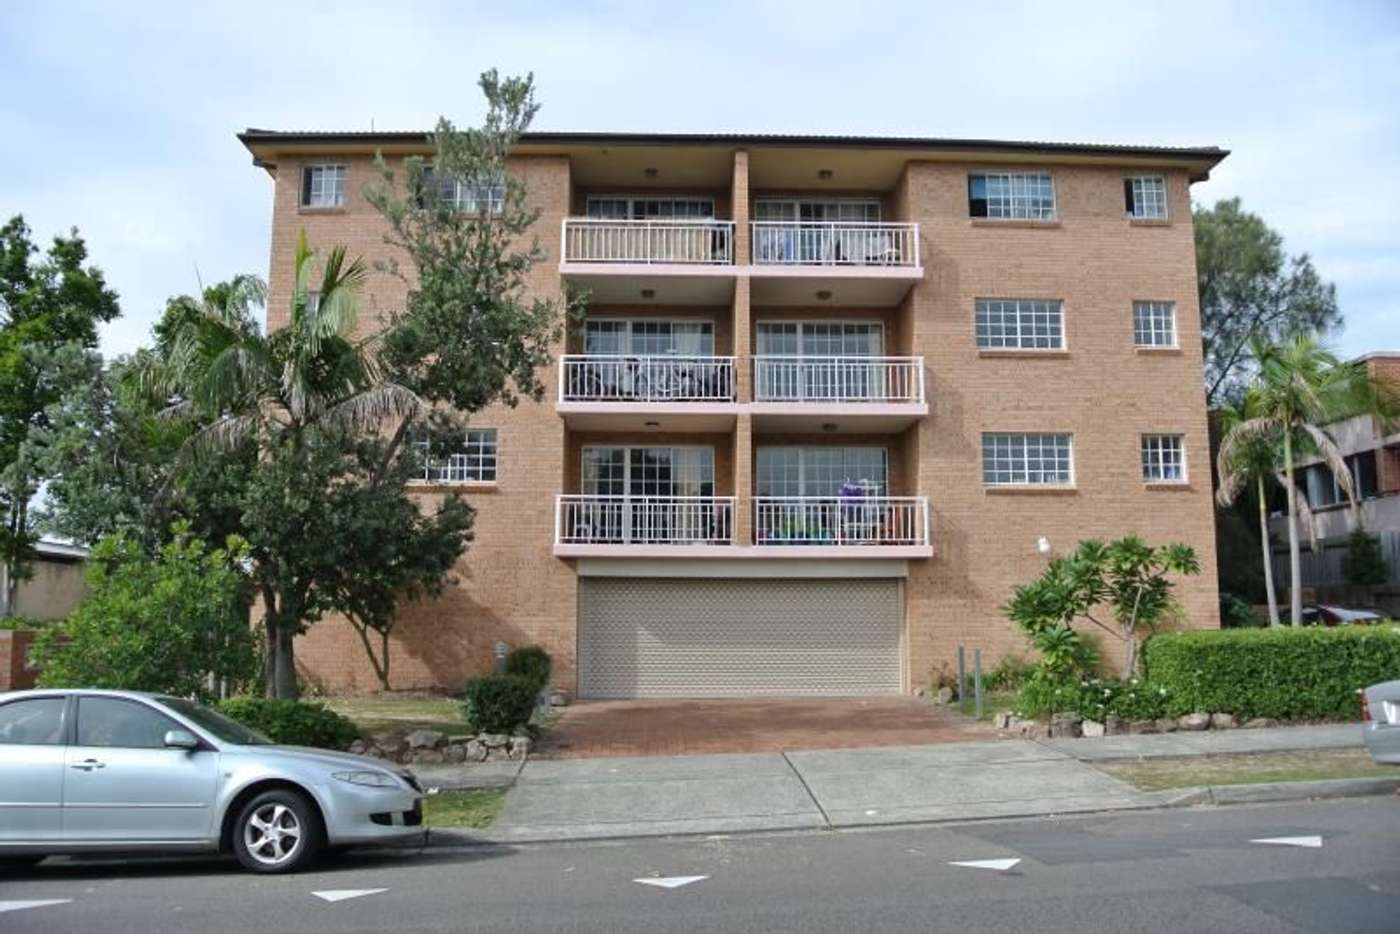 Main view of Homely apartment listing, 4/7-9 Kensington Road, Kensington NSW 2033